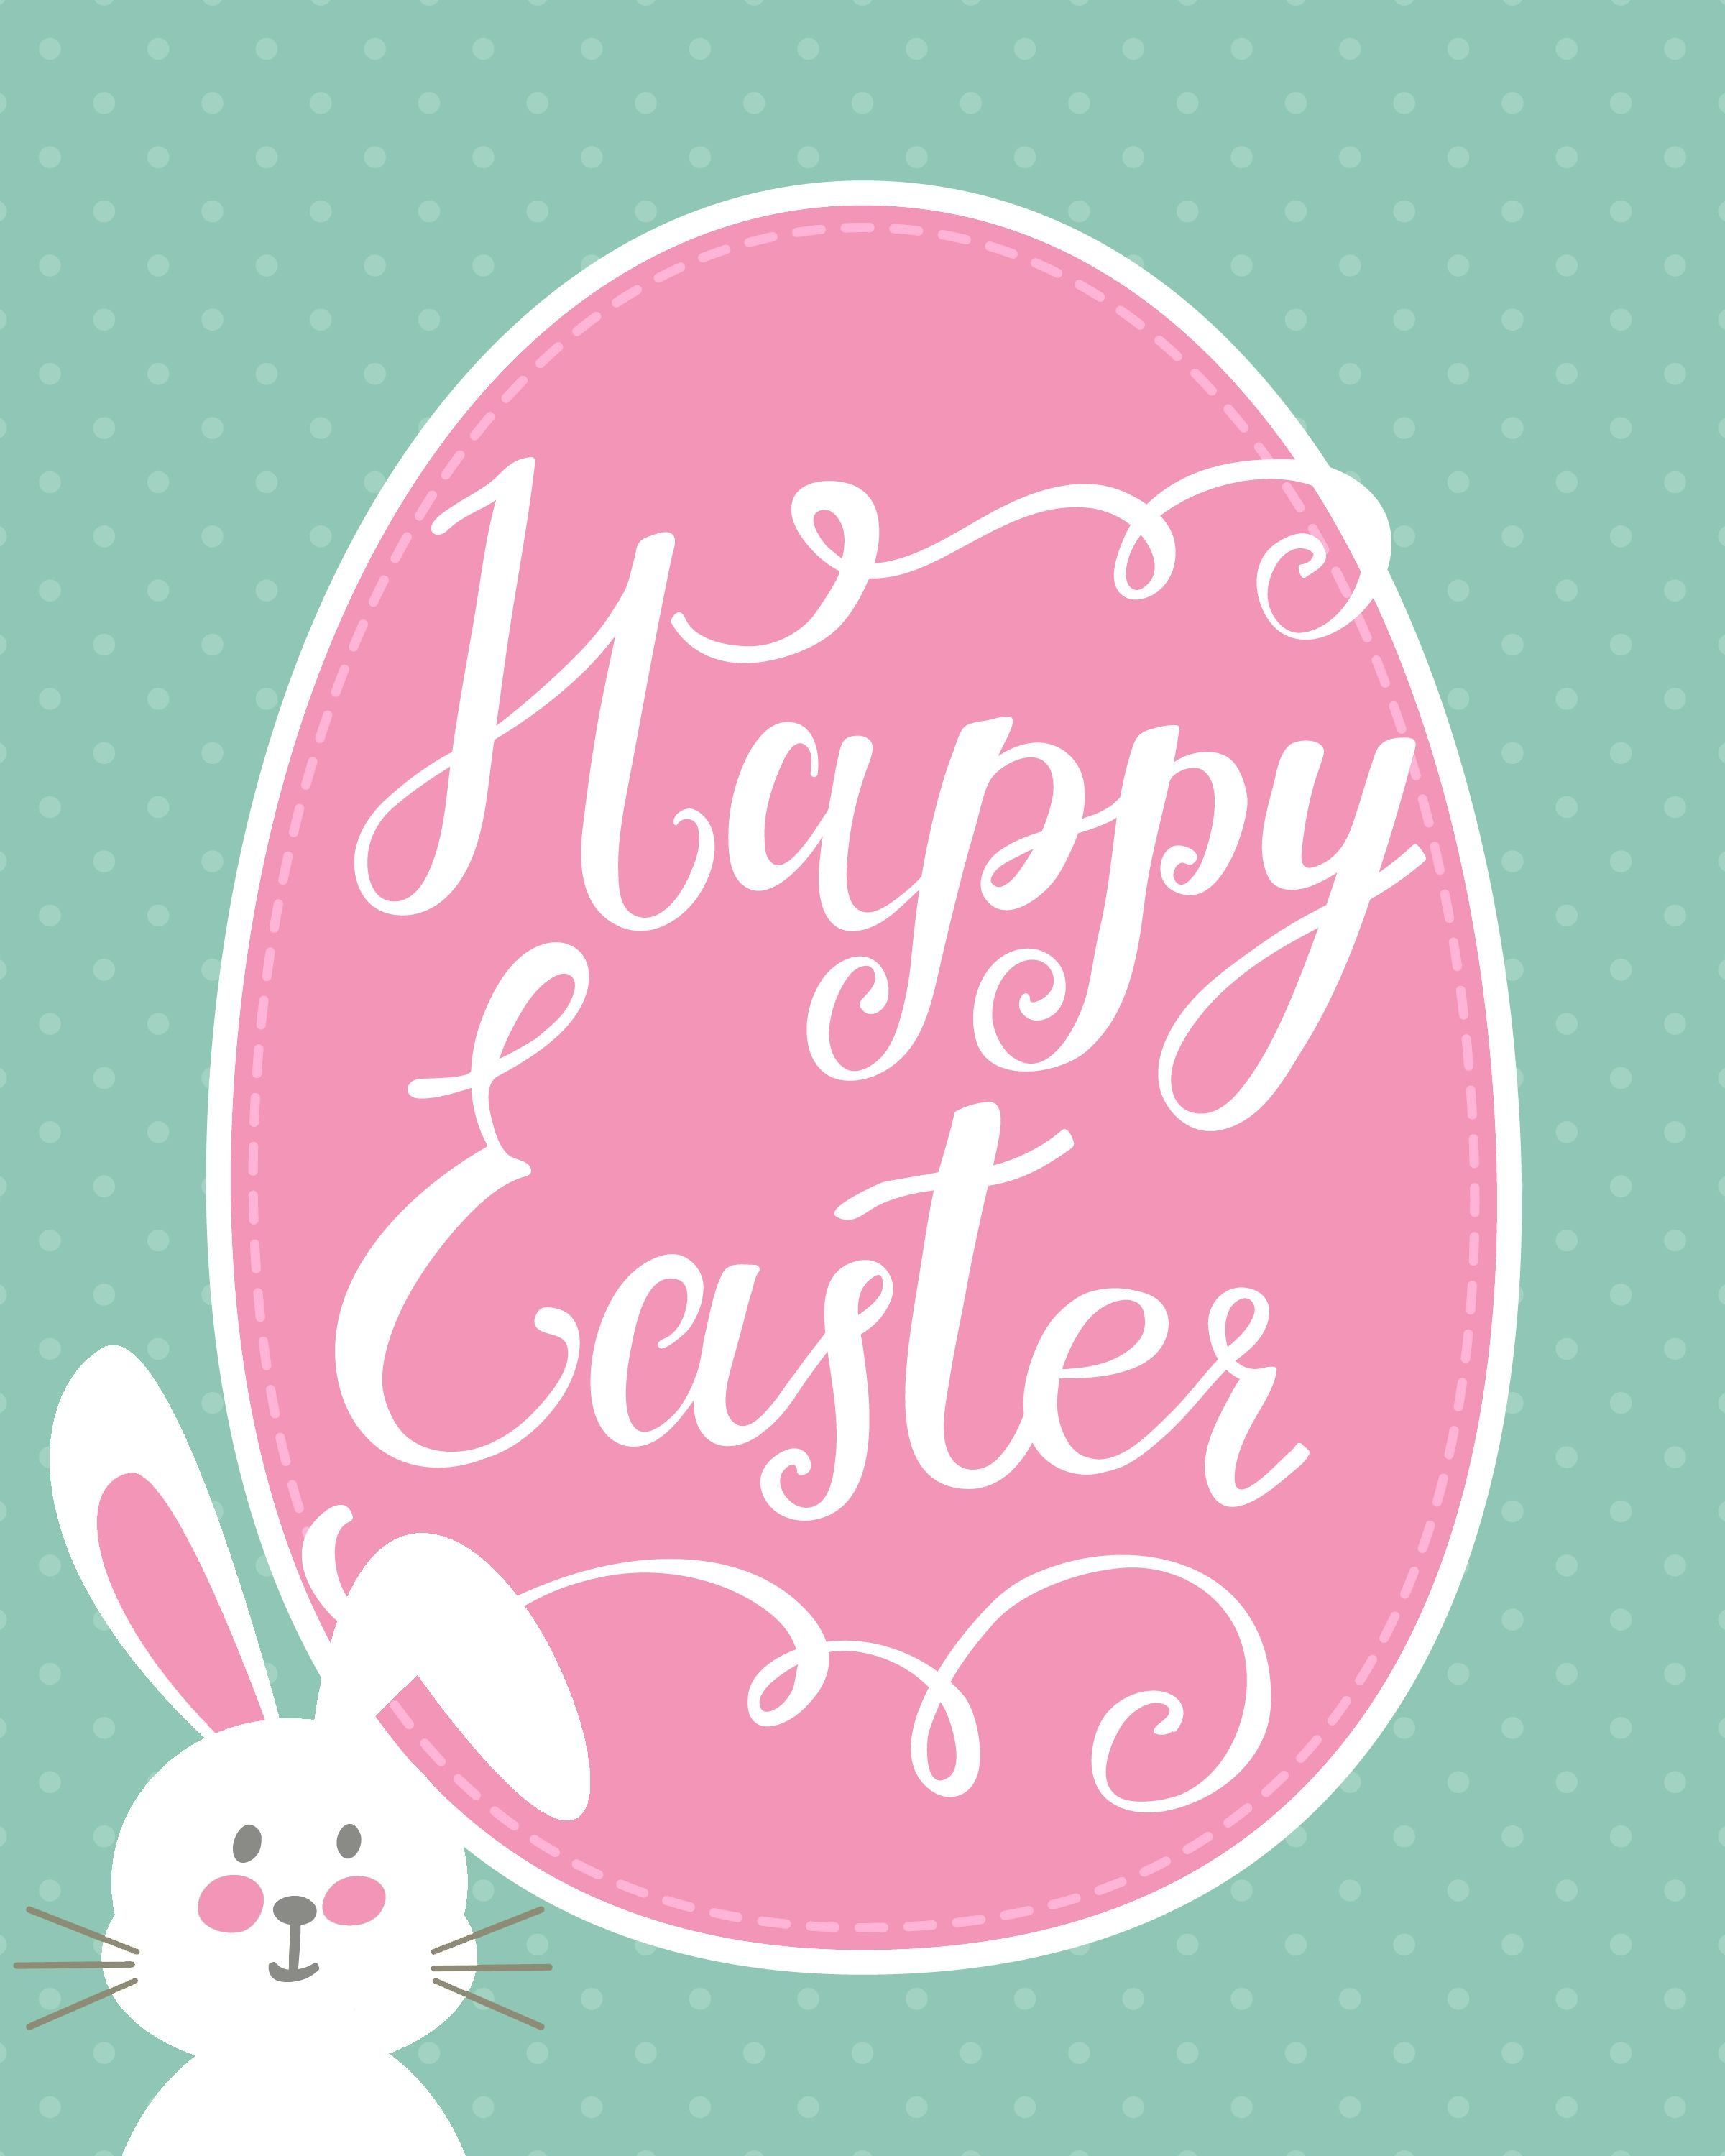 Happy Easter Bunny Printable | Holidays - Easter | Happy Easter - Free Printable Easter Cards